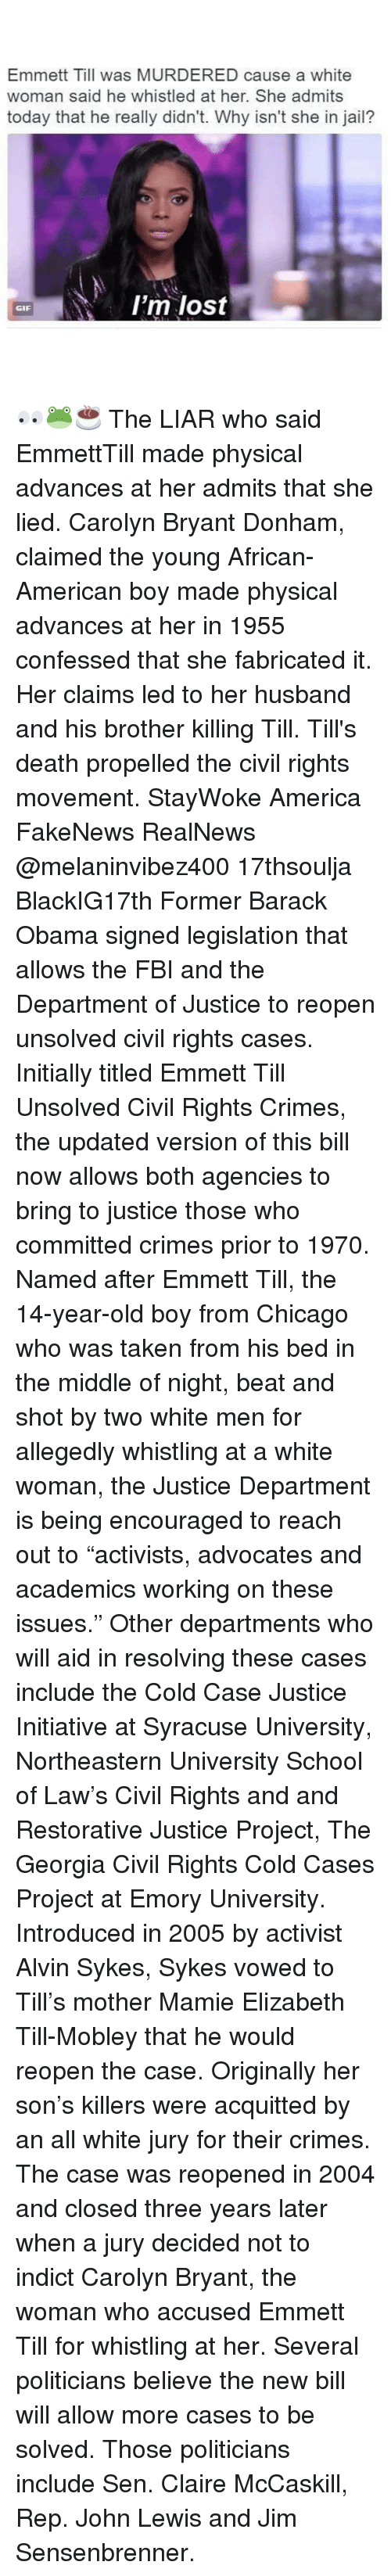 "Initialisms: Emmett Till was MURDERED cause a white  woman said he whistled at her. She admits  today that he really didn't. Why isn't she in jail?  I'm lost  GIF 👀🐸☕️ The LIAR who said EmmettTill made physical advances at her admits that she lied. Carolyn Bryant Donham, claimed the young African-American boy made physical advances at her in 1955 confessed that she fabricated it. Her claims led to her husband and his brother killing Till. Till's death propelled the civil rights movement. StayWoke America FakeNews RealNews @melaninvibez400 17thsoulja BlackIG17th Former Barack Obama signed legislation that allows the FBI and the Department of Justice to reopen unsolved civil rights cases. Initially titled Emmett Till Unsolved Civil Rights Crimes, the updated version of this bill now allows both agencies to bring to justice those who committed crimes prior to 1970. Named after Emmett Till, the 14-year-old boy from Chicago who was taken from his bed in the middle of night, beat and shot by two white men for allegedly whistling at a white woman, the Justice Department is being encouraged to reach out to ""activists, advocates and academics working on these issues."" Other departments who will aid in resolving these cases include the Cold Case Justice Initiative at Syracuse University, Northeastern University School of Law's Civil Rights and and Restorative Justice Project, The Georgia Civil Rights Cold Cases Project at Emory University. Introduced in 2005 by activist Alvin Sykes, Sykes vowed to Till's mother Mamie Elizabeth Till-Mobley that he would reopen the case. Originally her son's killers were acquitted by an all white jury for their crimes. The case was reopened in 2004 and closed three years later when a jury decided not to indict Carolyn Bryant, the woman who accused Emmett Till for whistling at her. Several politicians believe the new bill will allow more cases to be solved. Those politicians include Sen. Claire McCaskill, Rep. John Lewis and Jim Sensenbrenner."